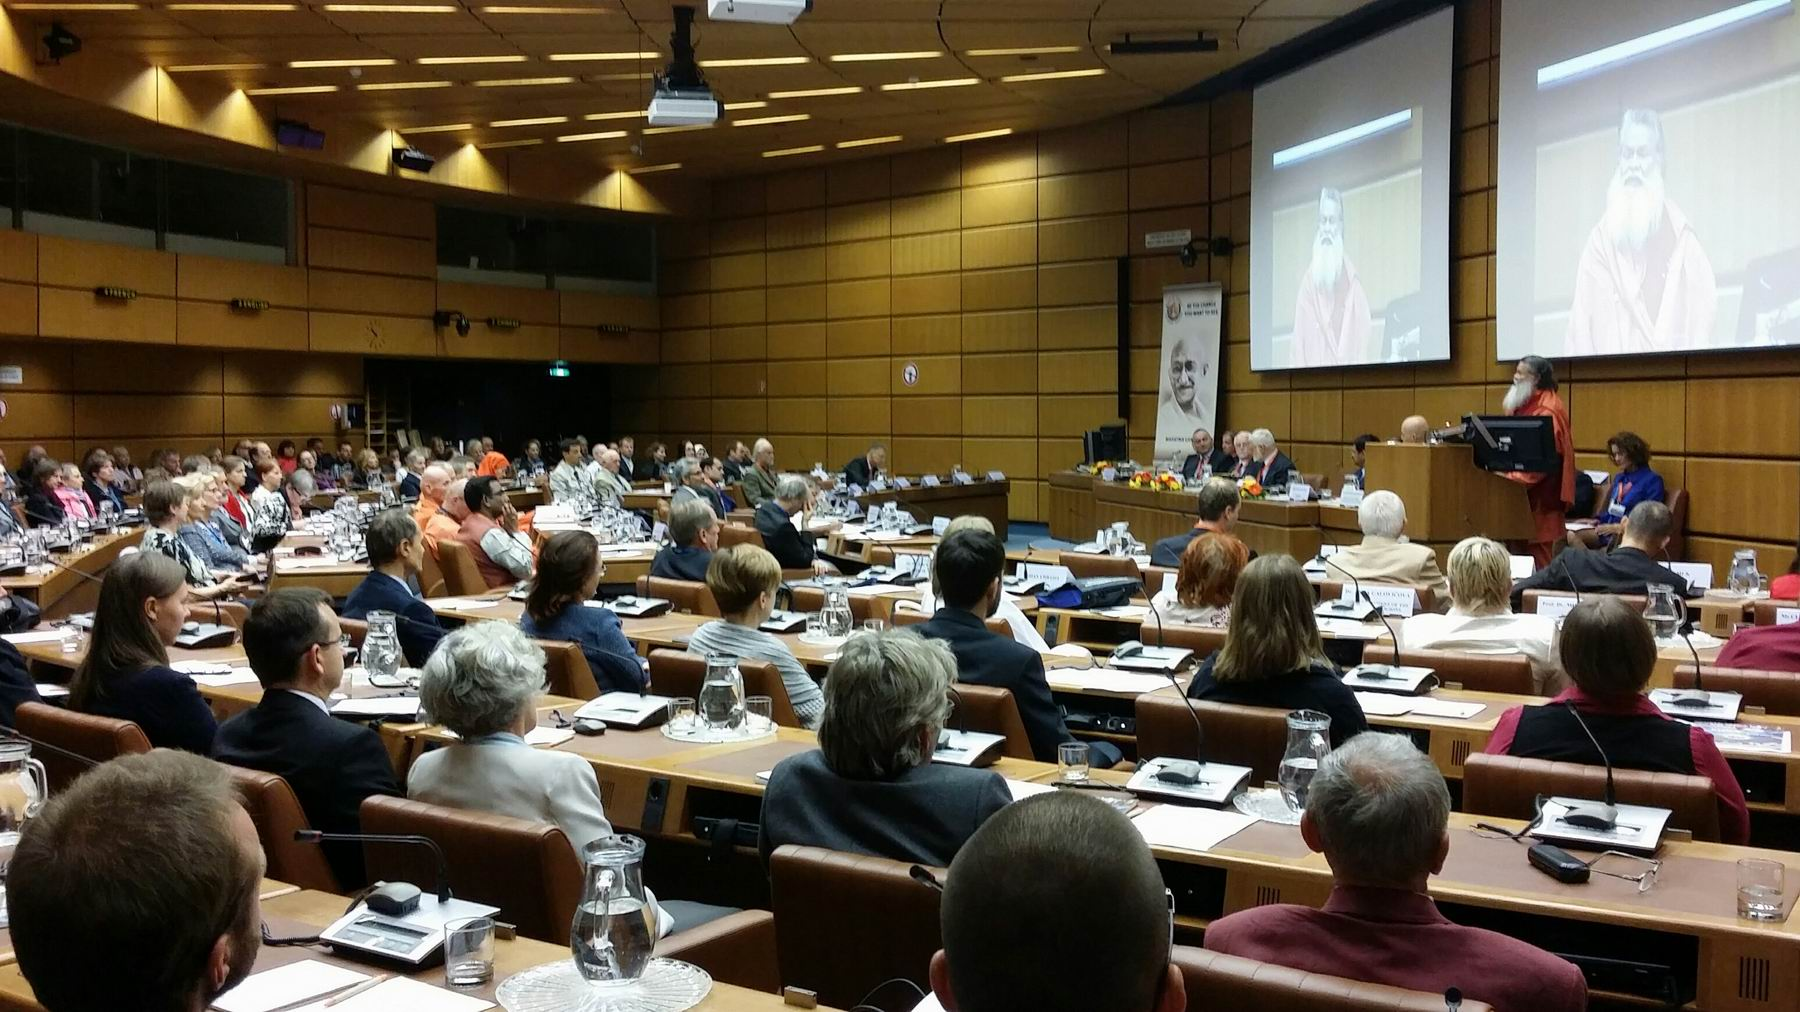 20151002 Vishwaguruji-speaking-at-the-Vienna-Conference